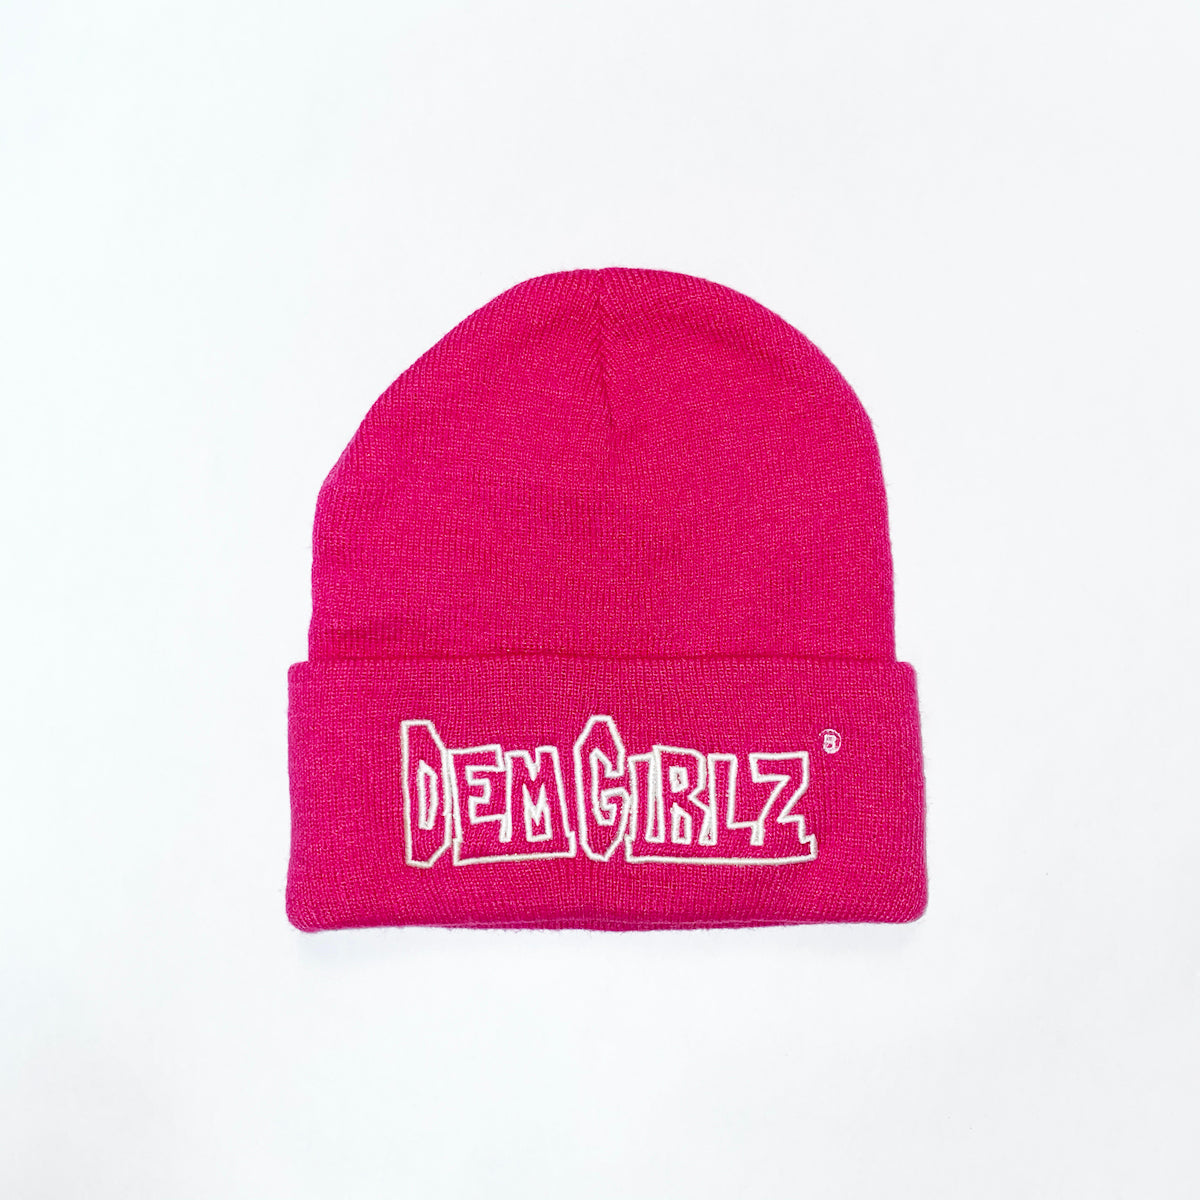 DEM GIRLZ HOT PINK BEANIE